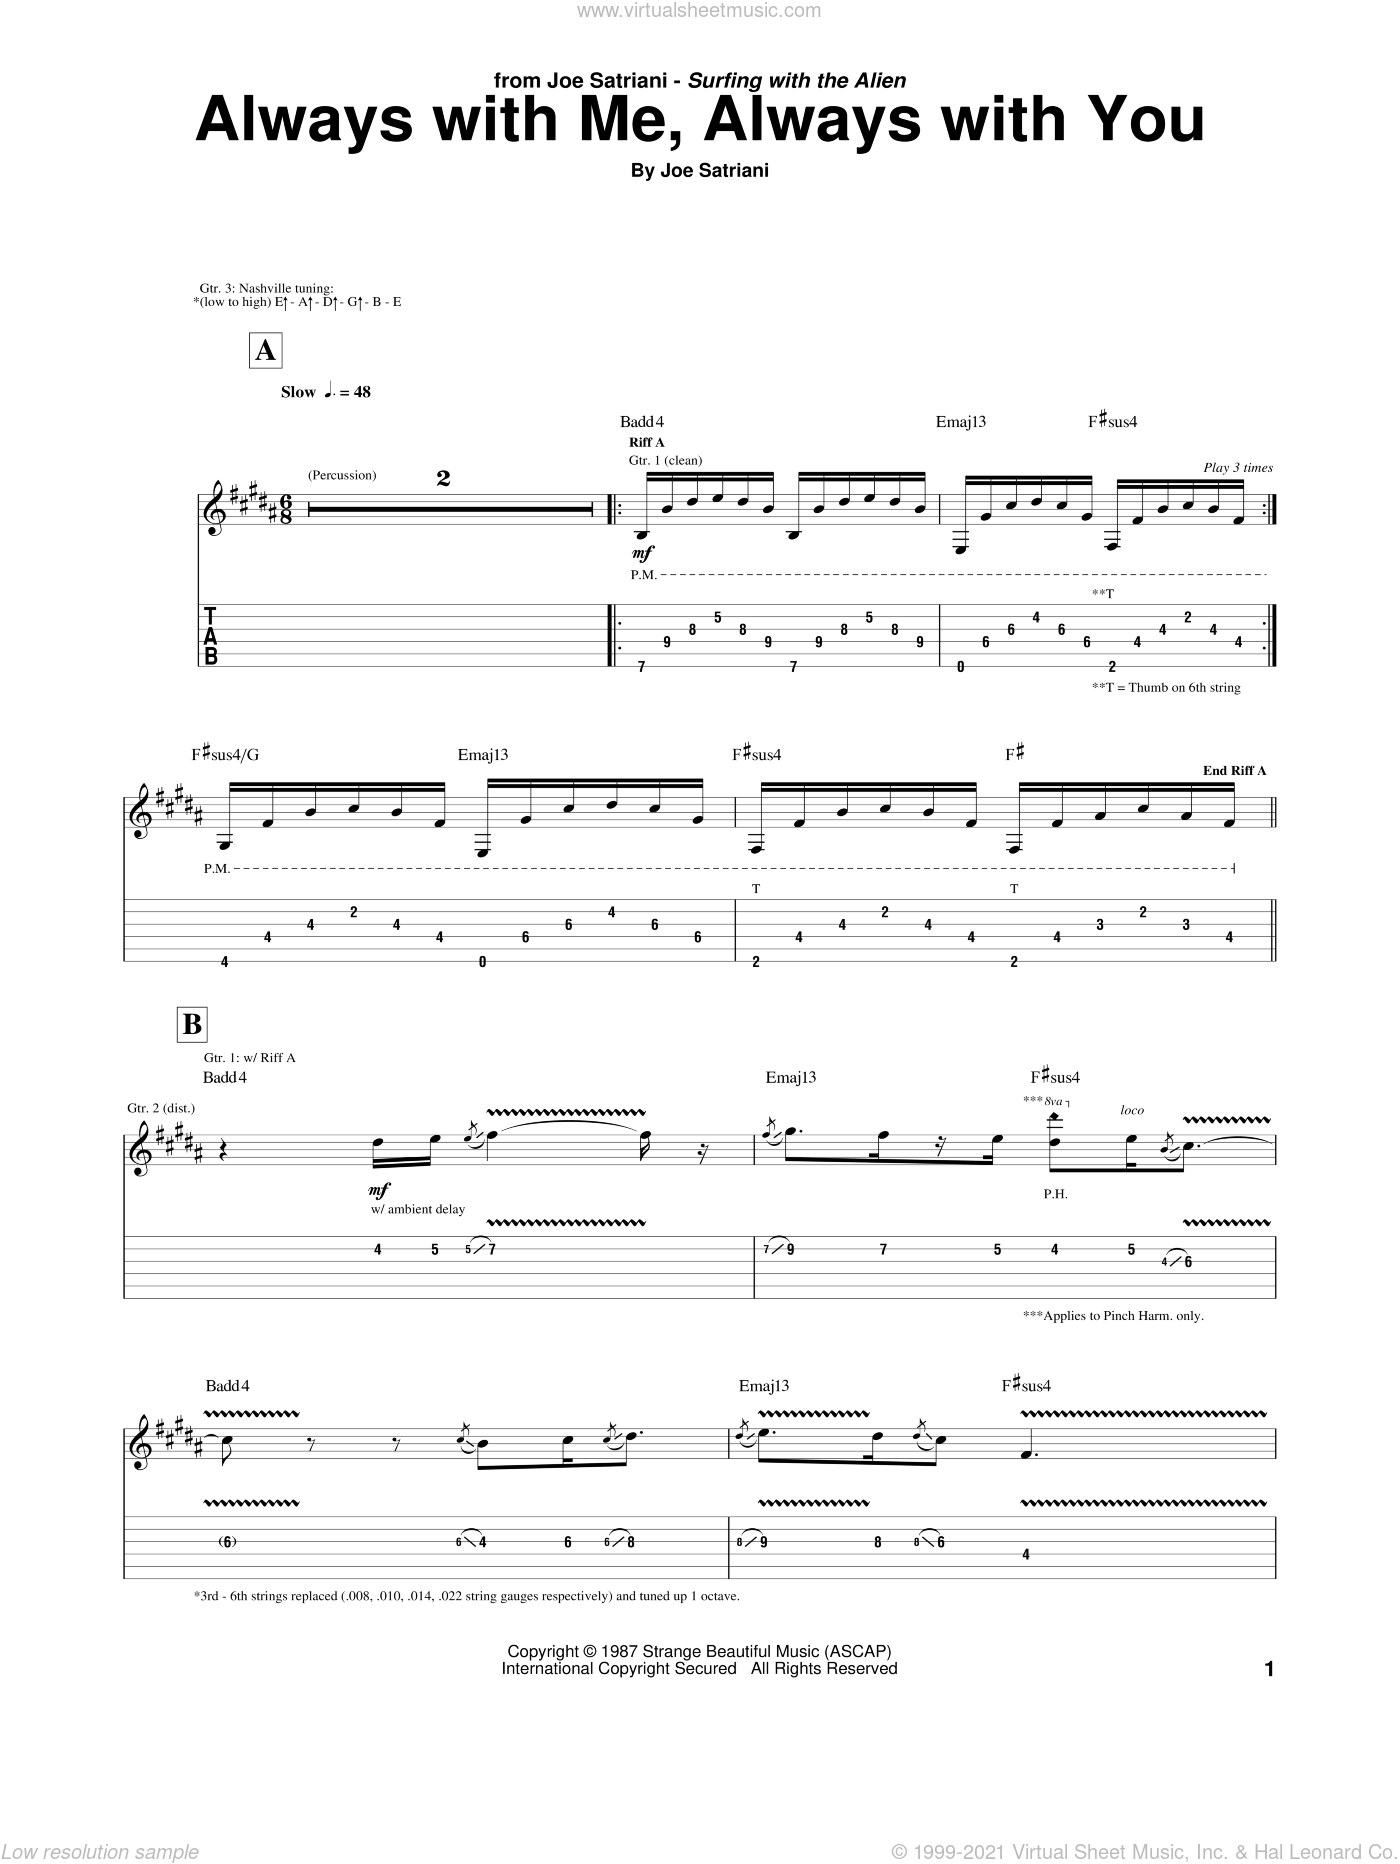 Always With Me, Always With You sheet music for guitar (tablature) by Joe Satriani